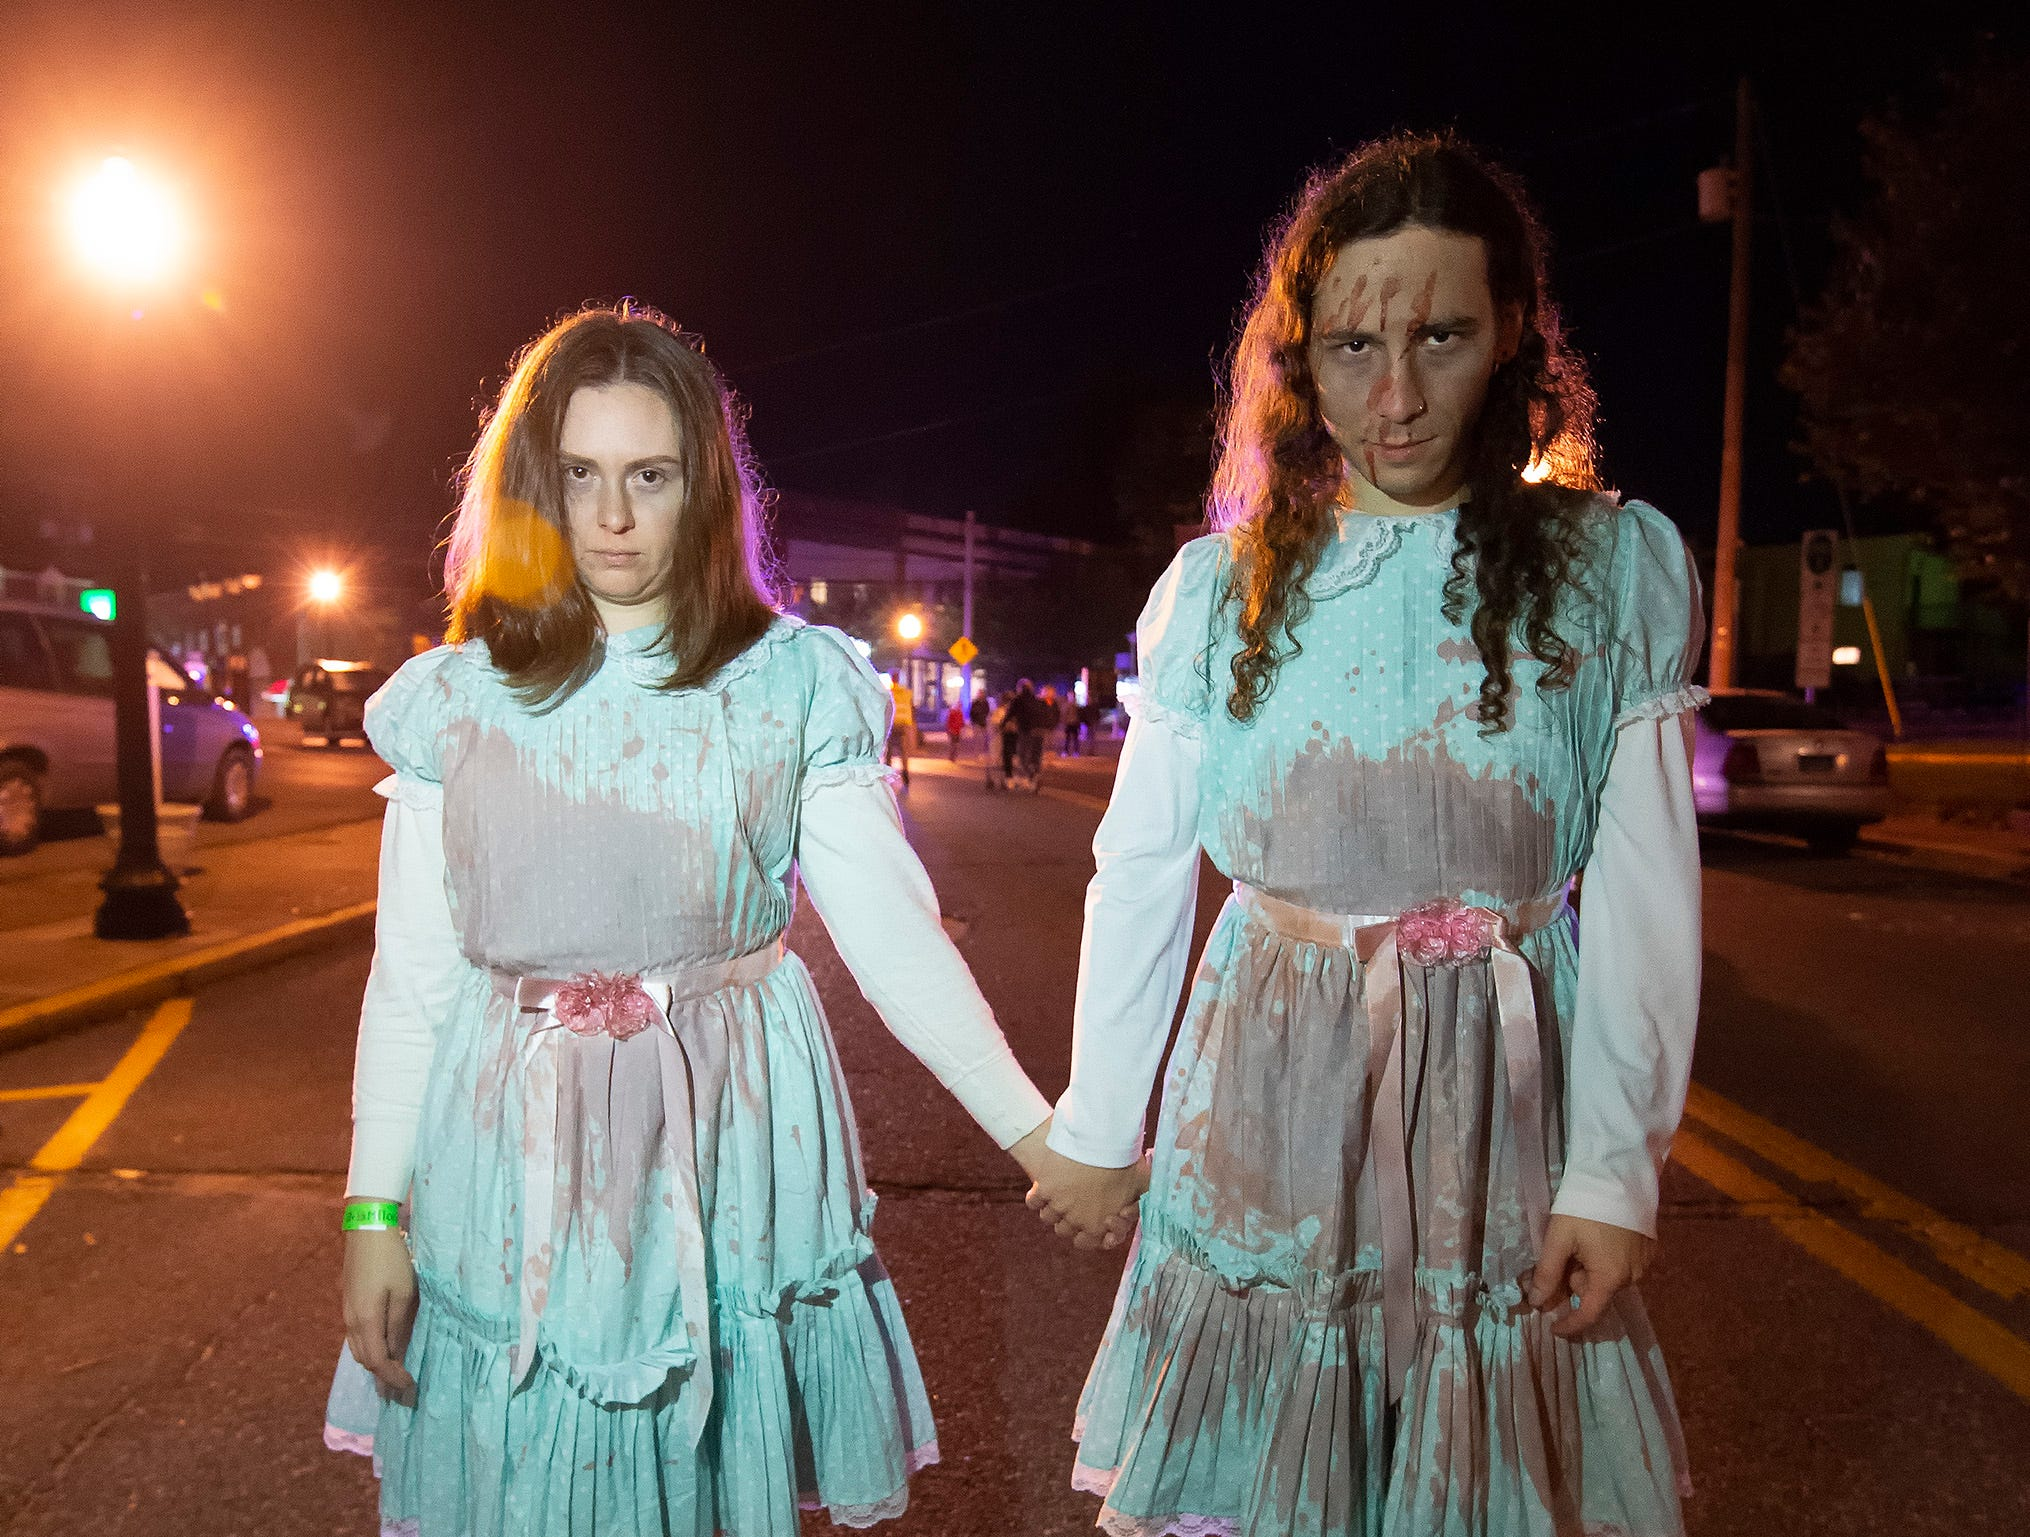 Jess and David Rushman of Wilmington dressed as the Grady Twins from the movie The Shining at the Milton Zombie Fest 2018 in downtown Milton.